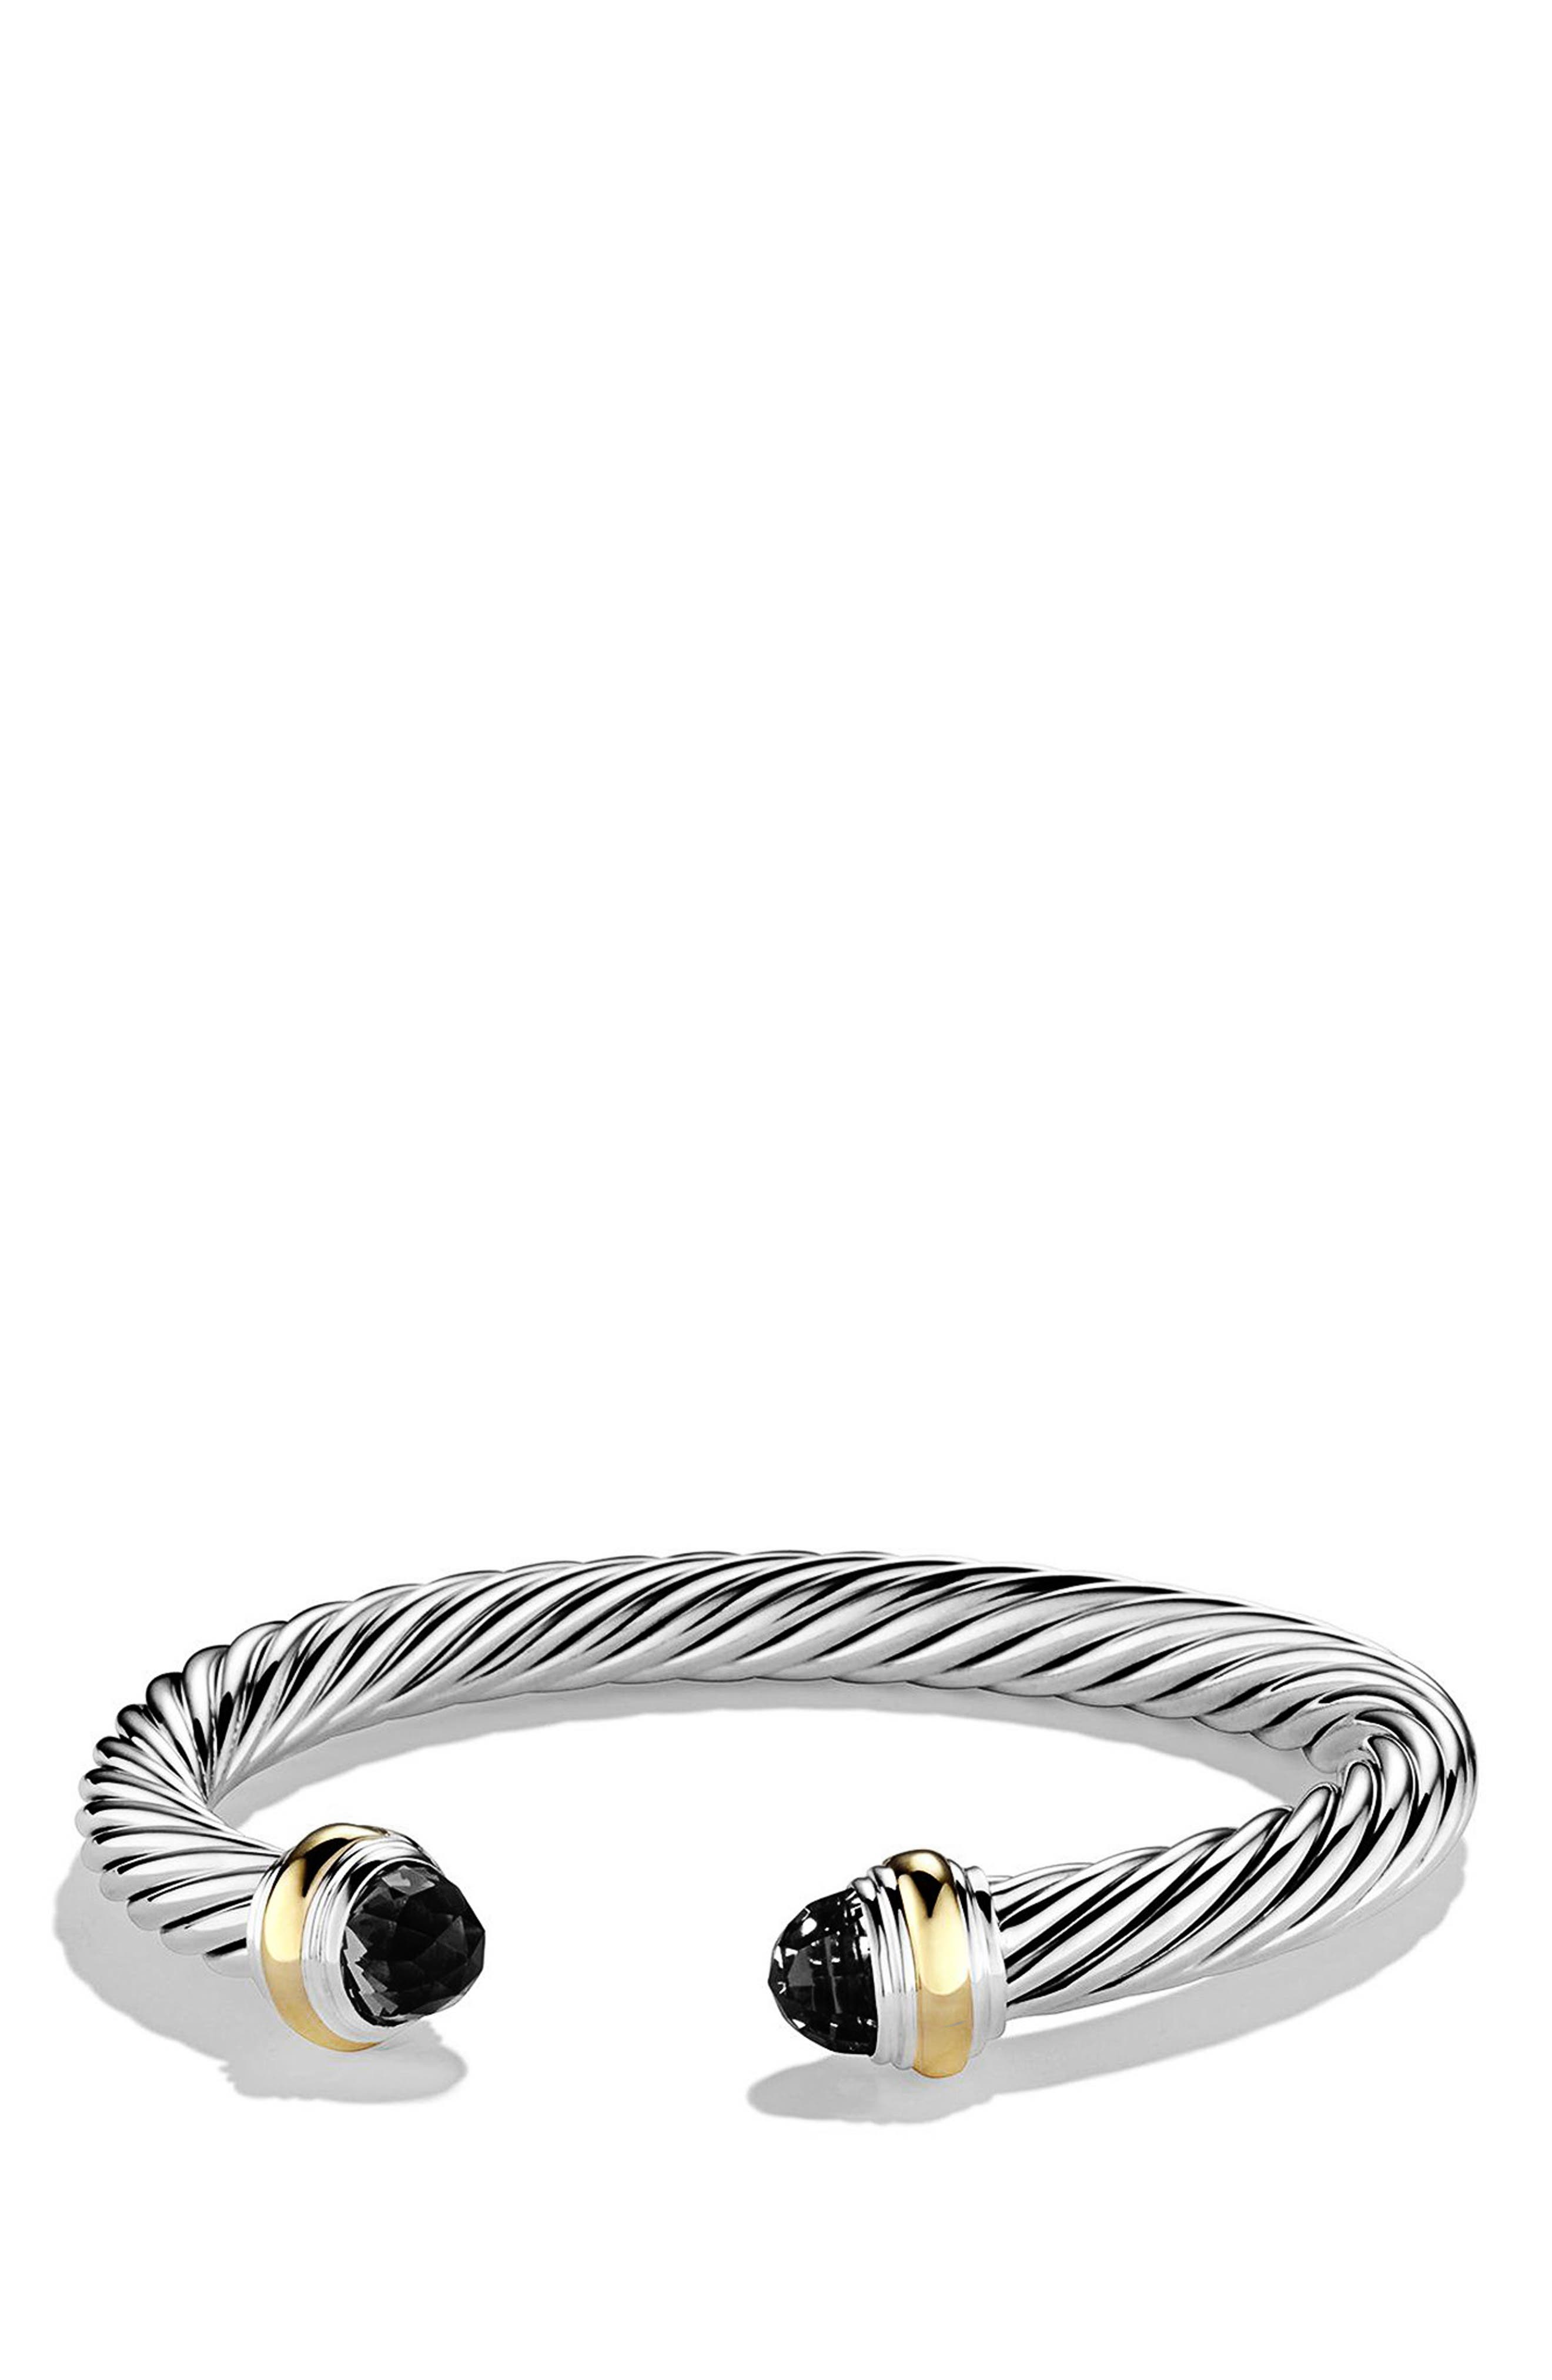 DAVID YURMAN, Cable Classics Bracelet with Semiprecious Stones & 14K Gold, 7mm, Main thumbnail 1, color, BLACK ONYX